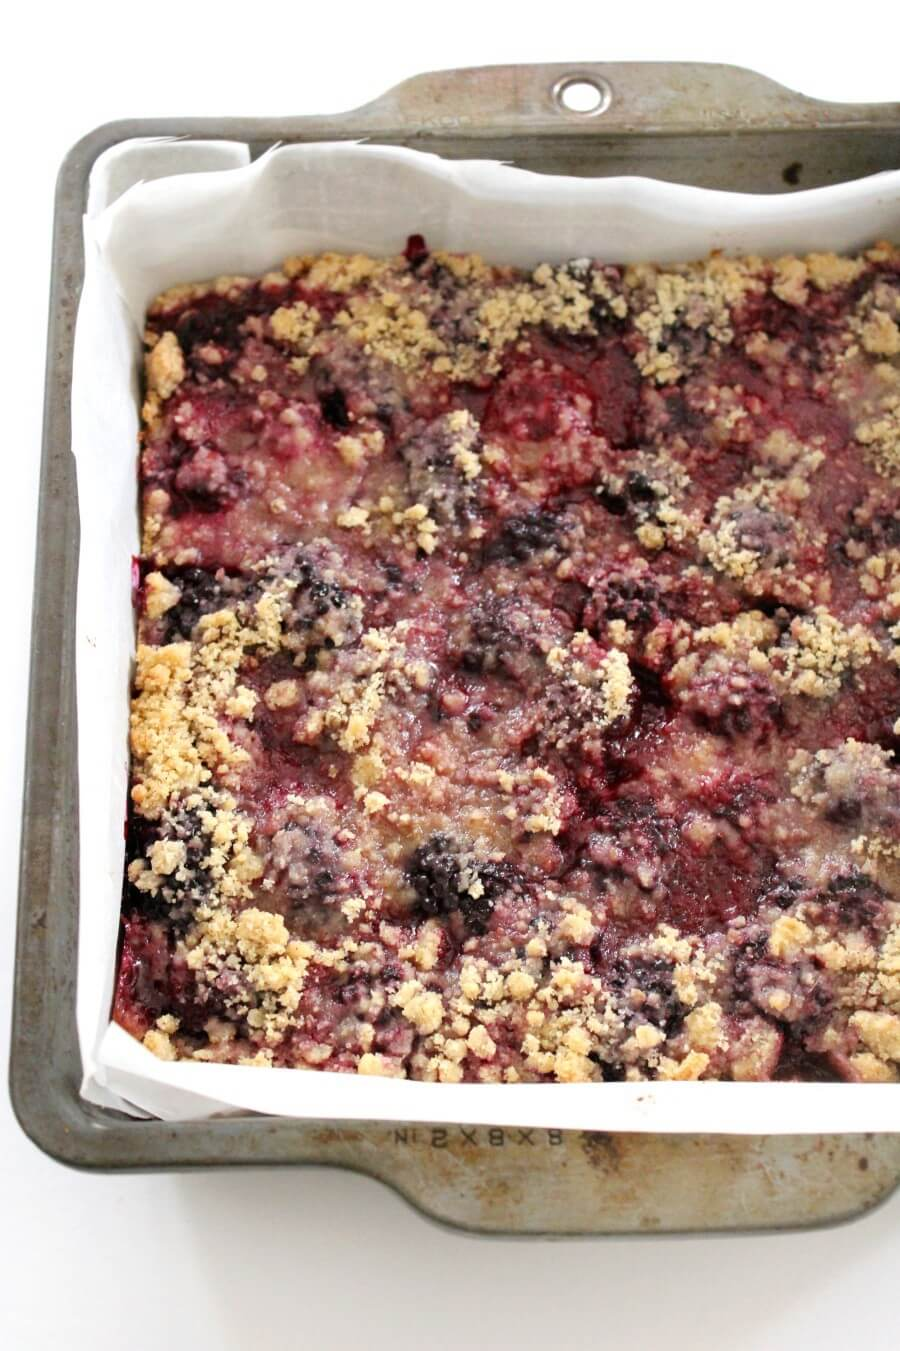 gluten-free blackberry crumb bars layered in baking pan with parchment paper